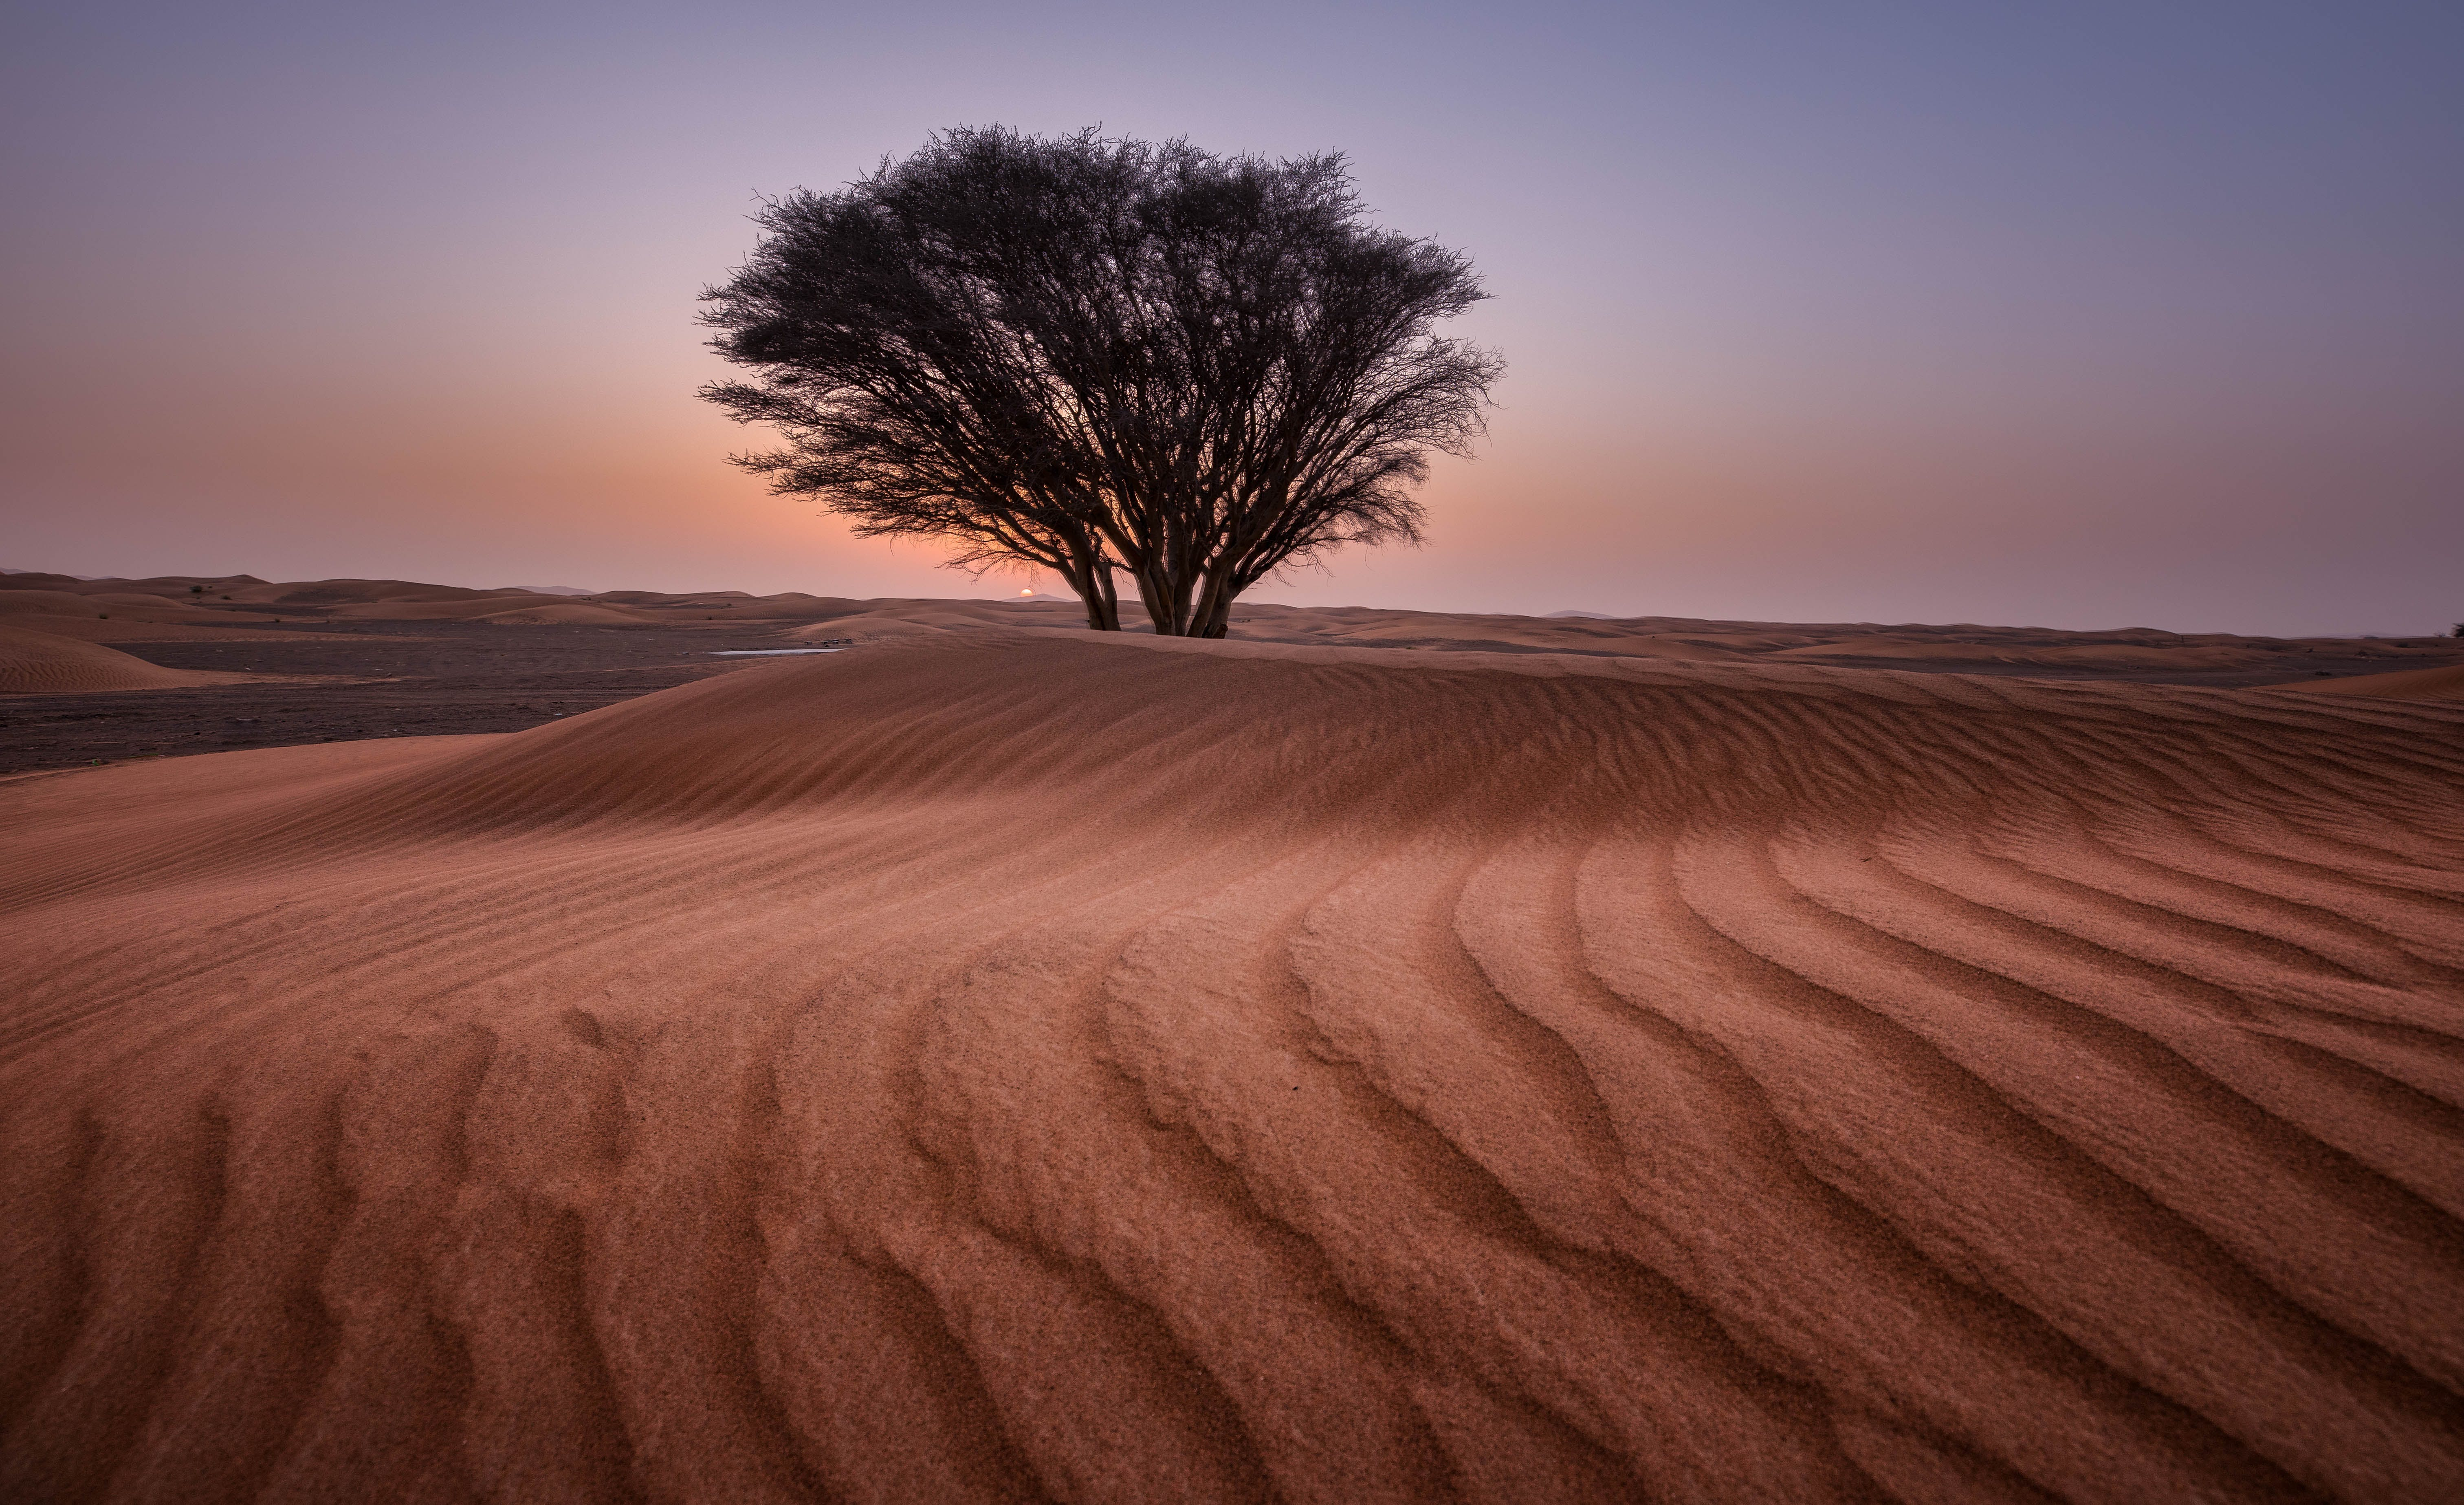 Green Tree in the Middle of Desert